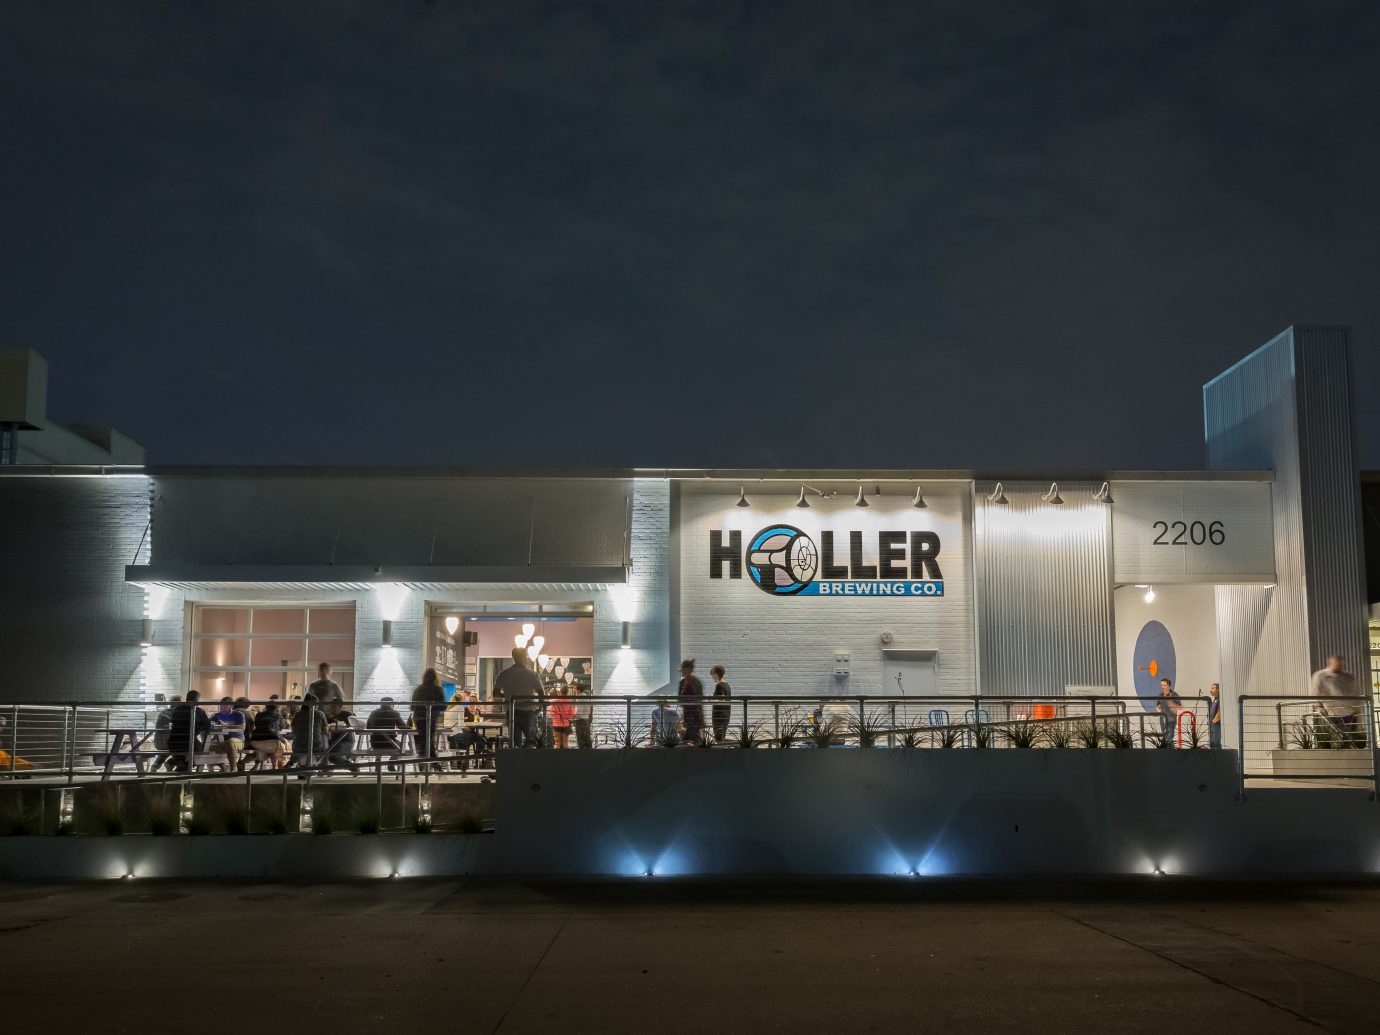 Exterior view of Holler Brewing Co